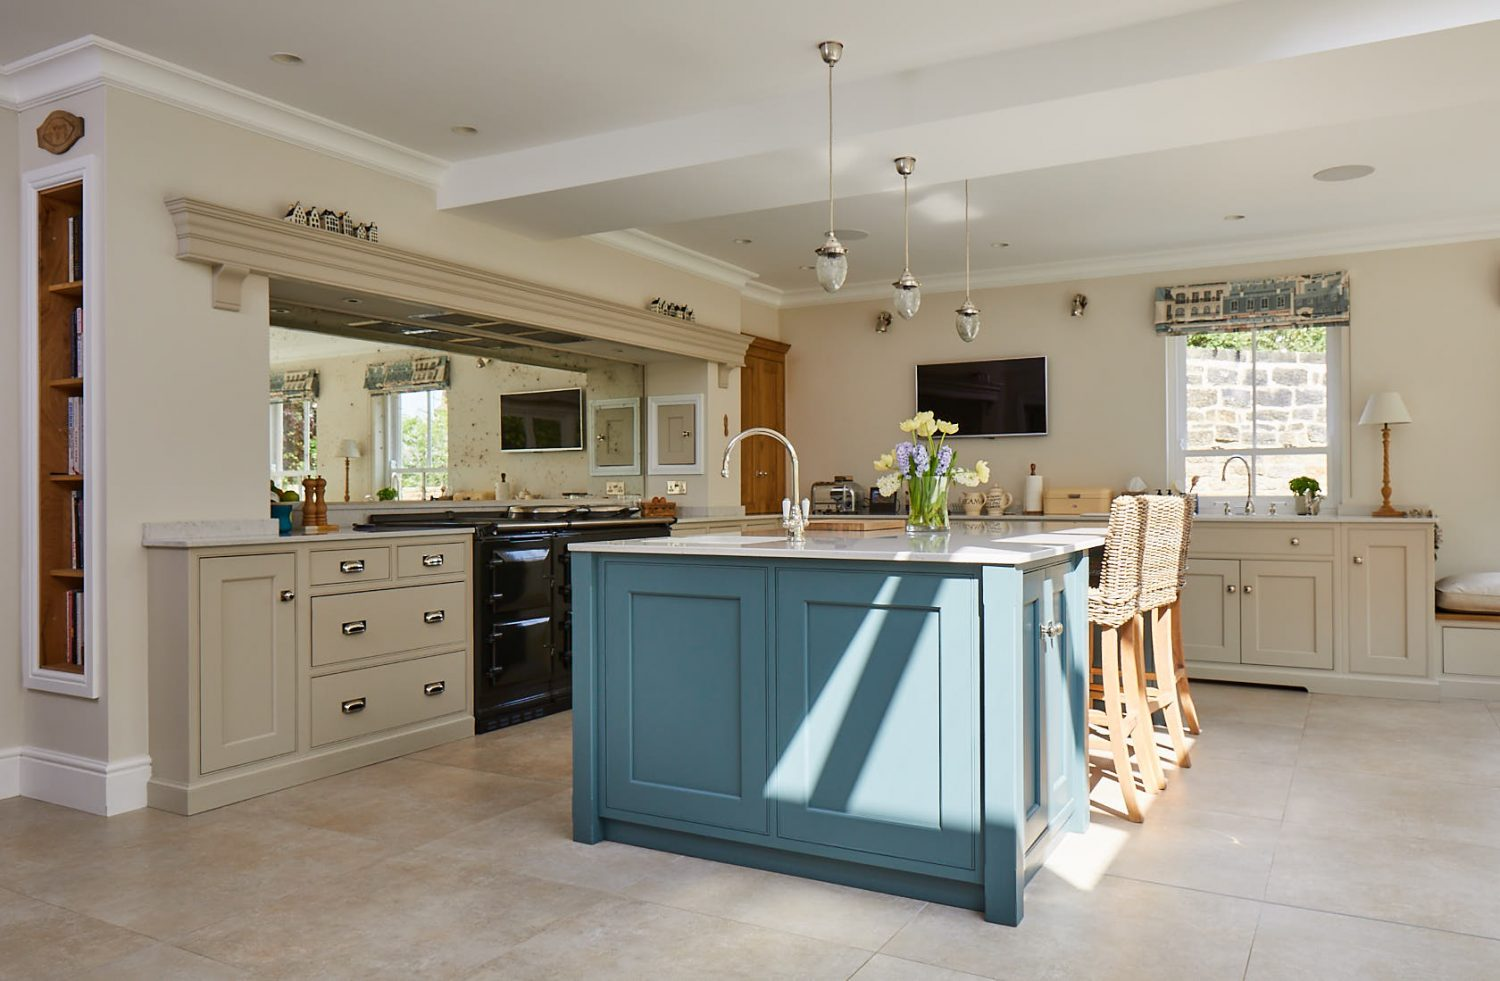 Shadow casts down on green kitchen island with integrated breakfast bar